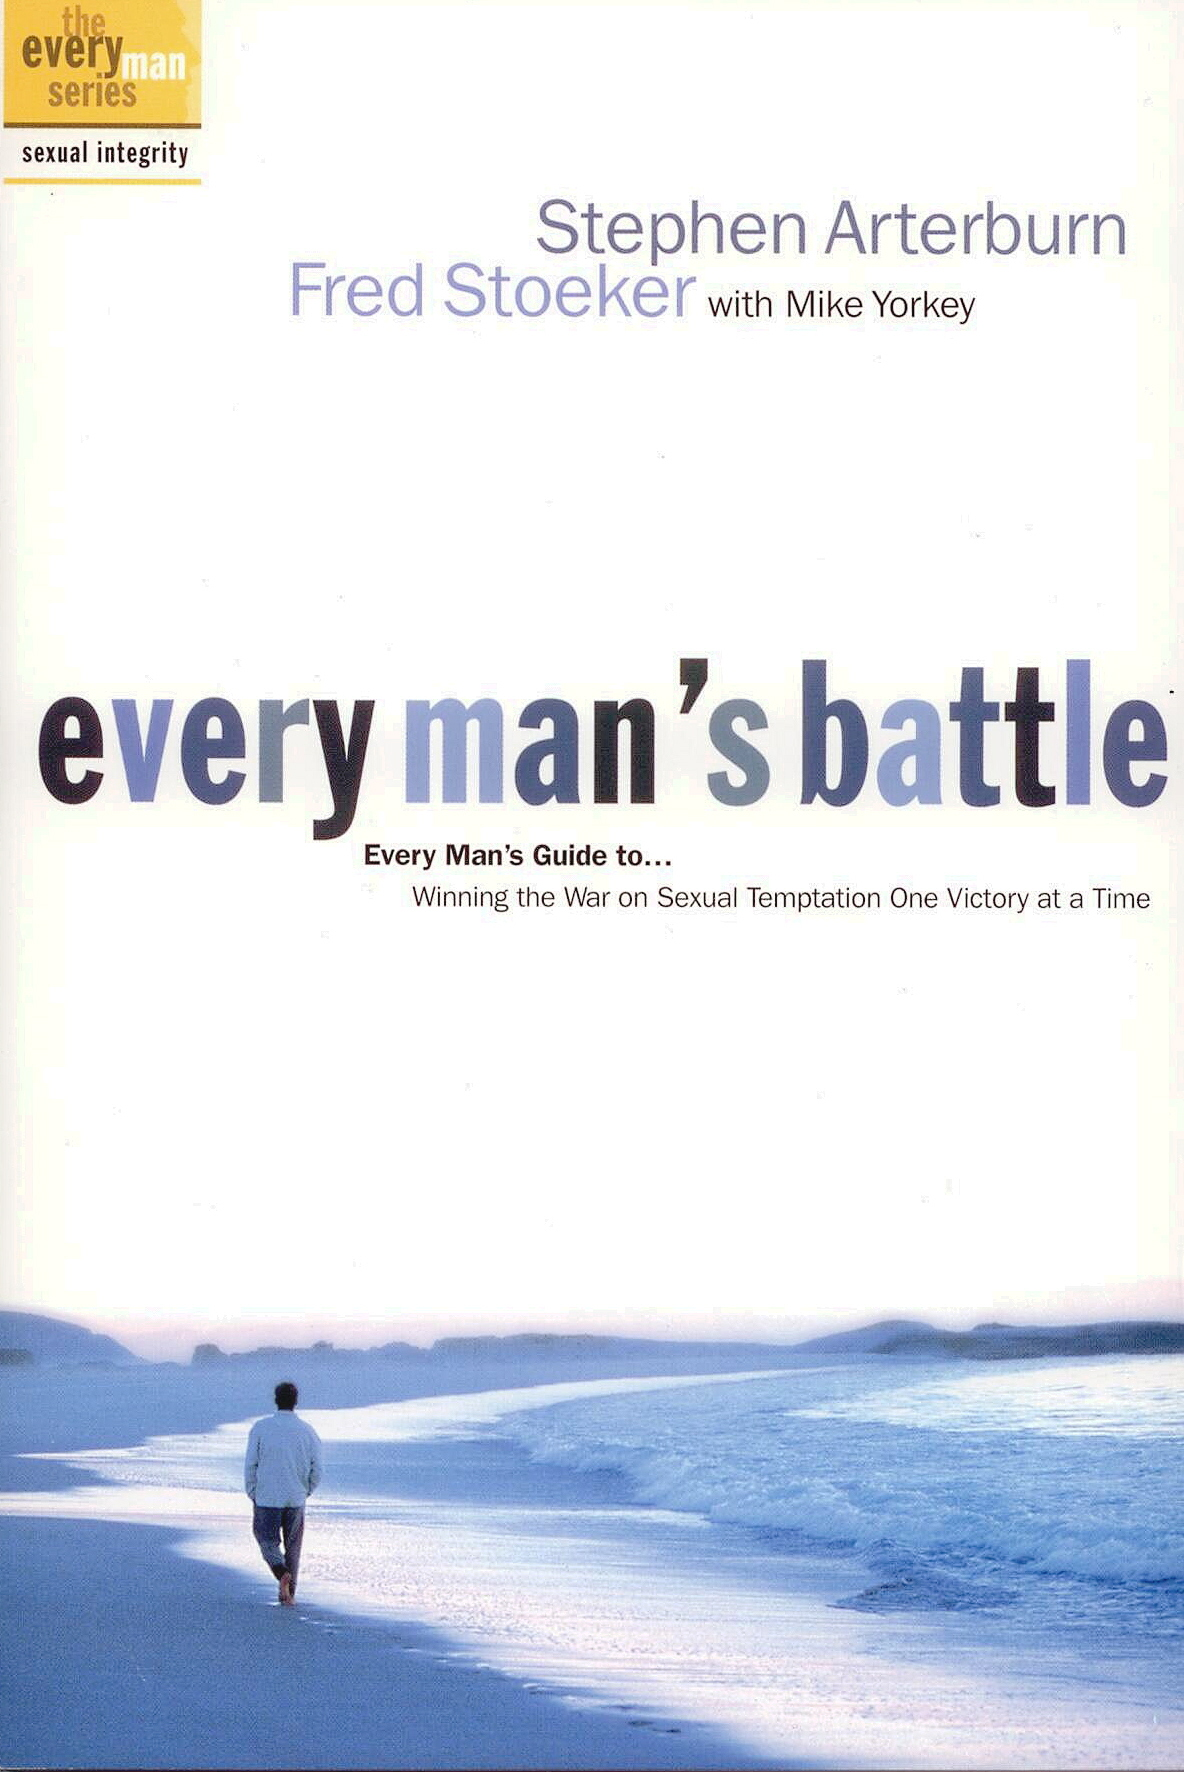 Every Man' s Battle by Stephen Arterburn and FredStoeker